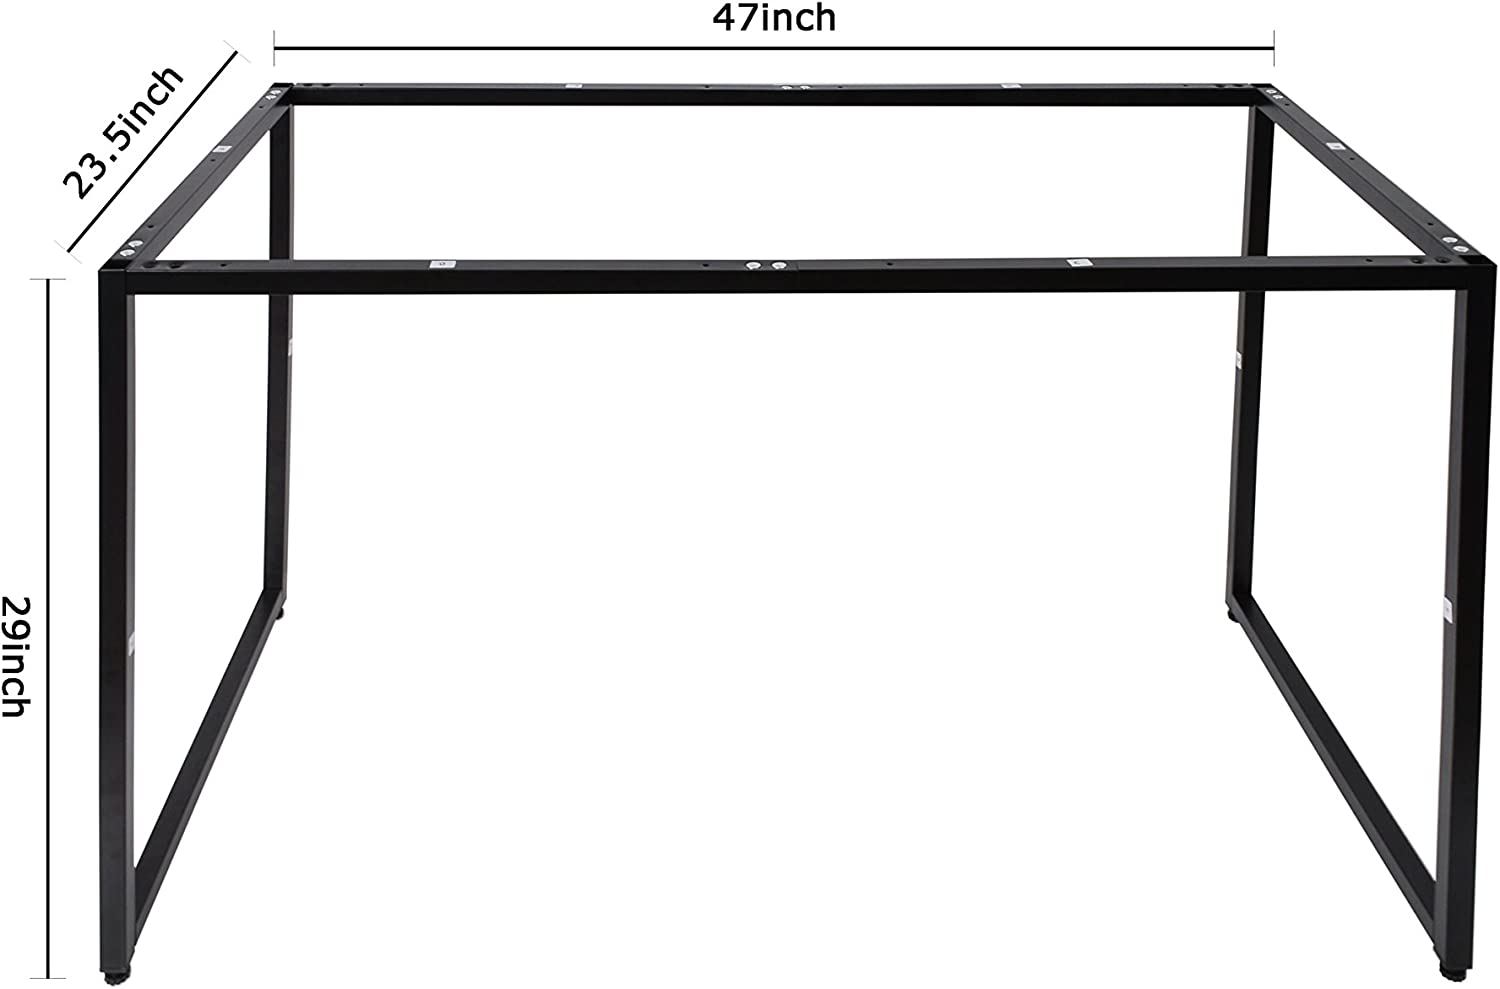 U-LALA Modern Design Easy Assembly Black Desk Frame for Home and Office (Small)